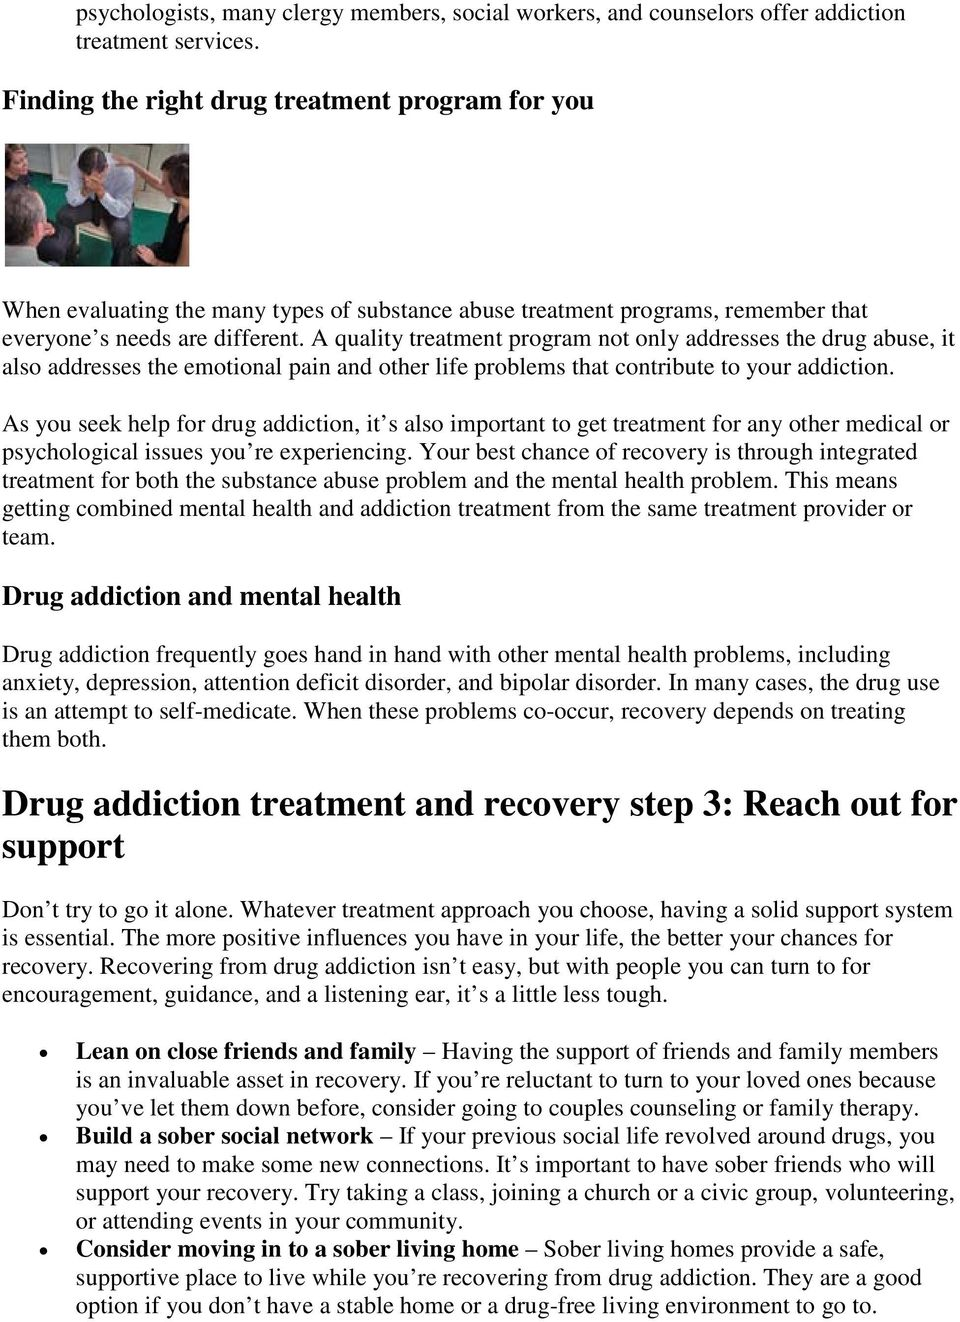 A quality treatment program not only addresses the drug abuse, it also addresses the emotional pain and other life problems that contribute to your addiction.